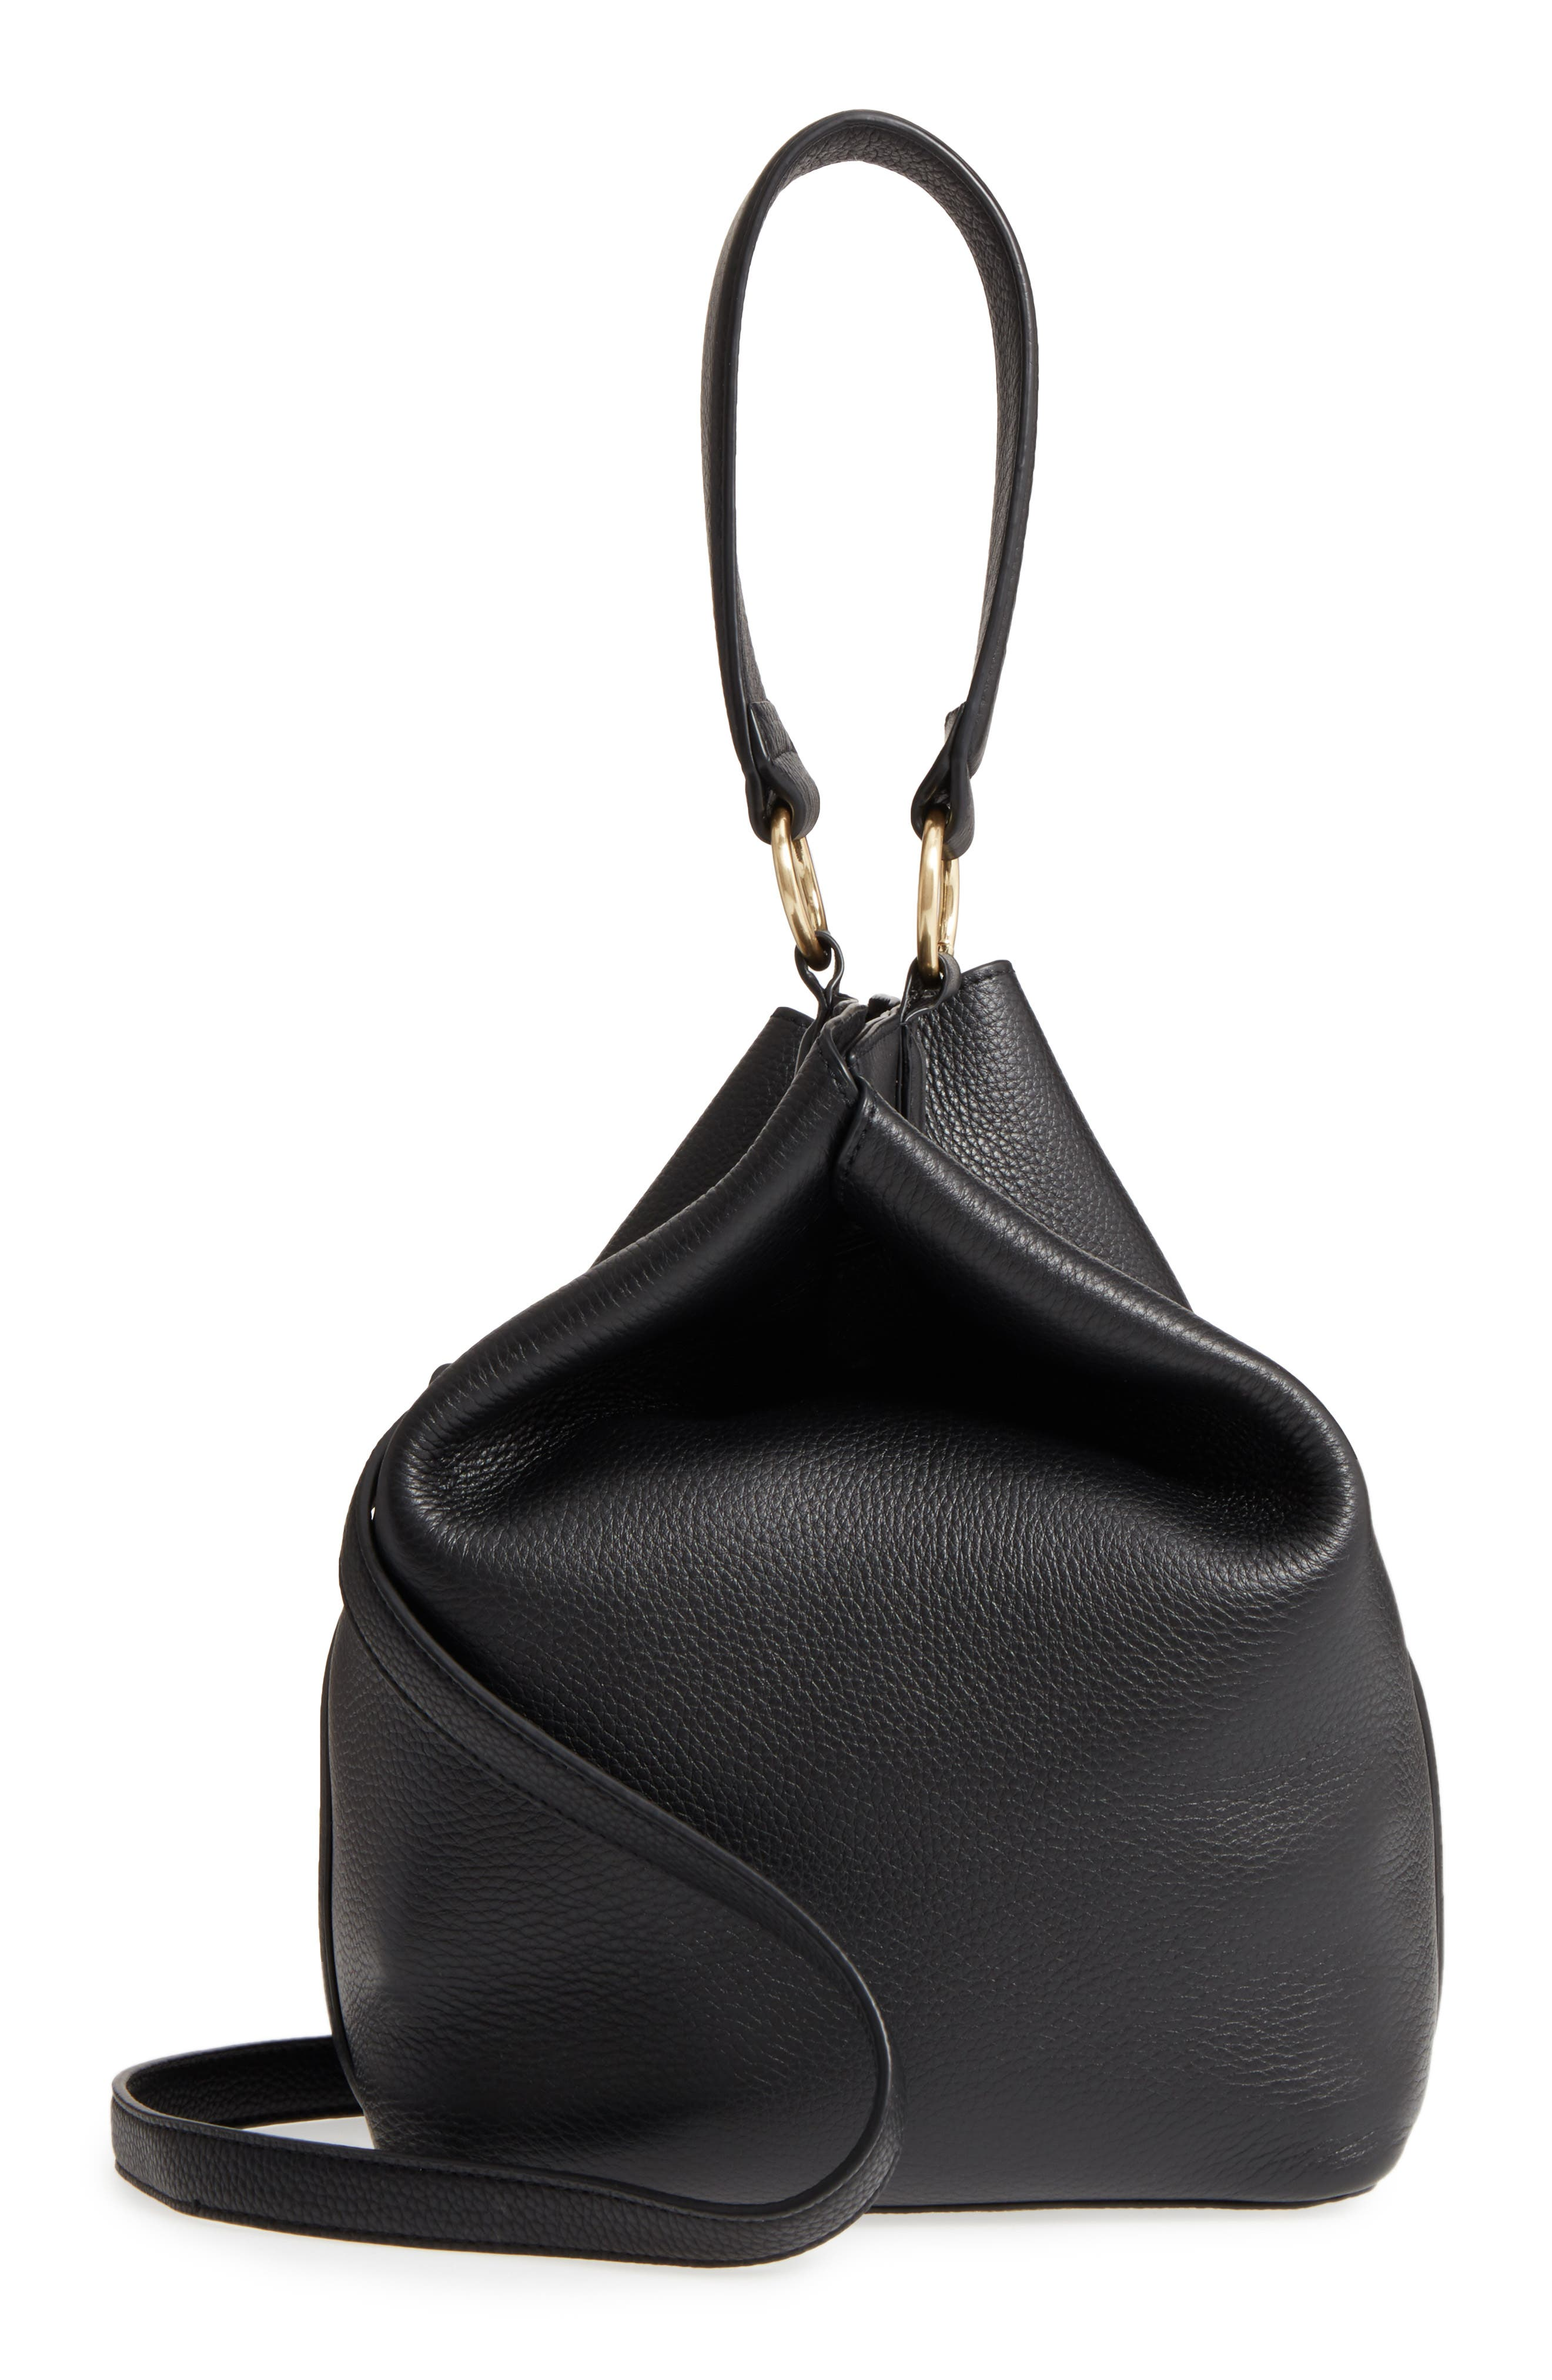 Renee Leather Bucket Bag,                         Main,                         color, 001